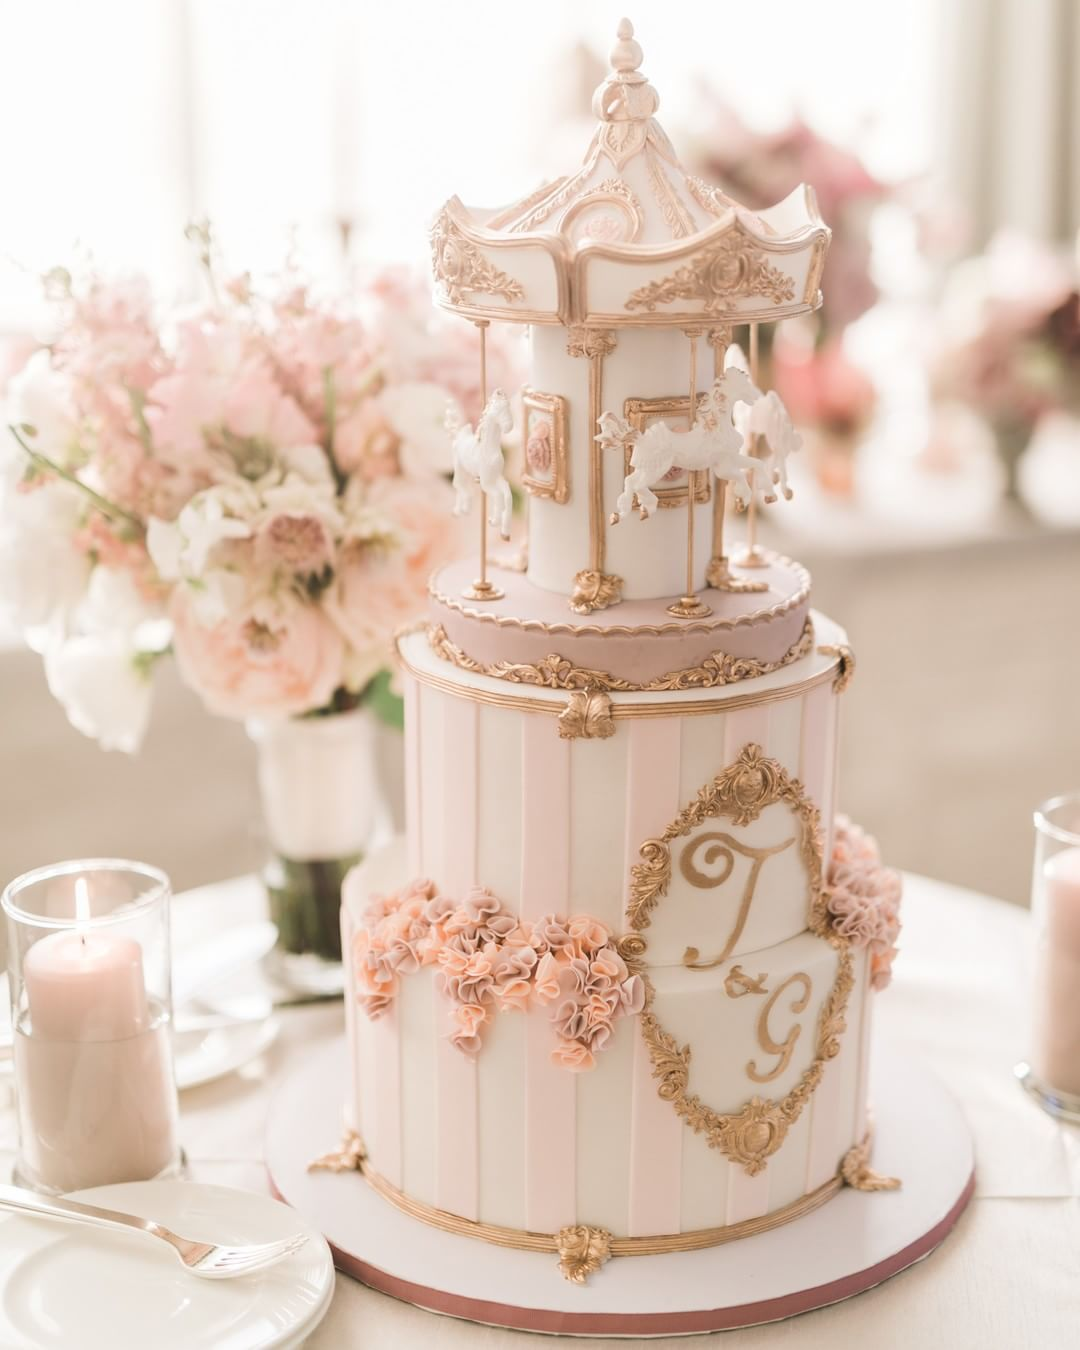 If We Remarry, Can We Get A Cake Like This? It Is SO